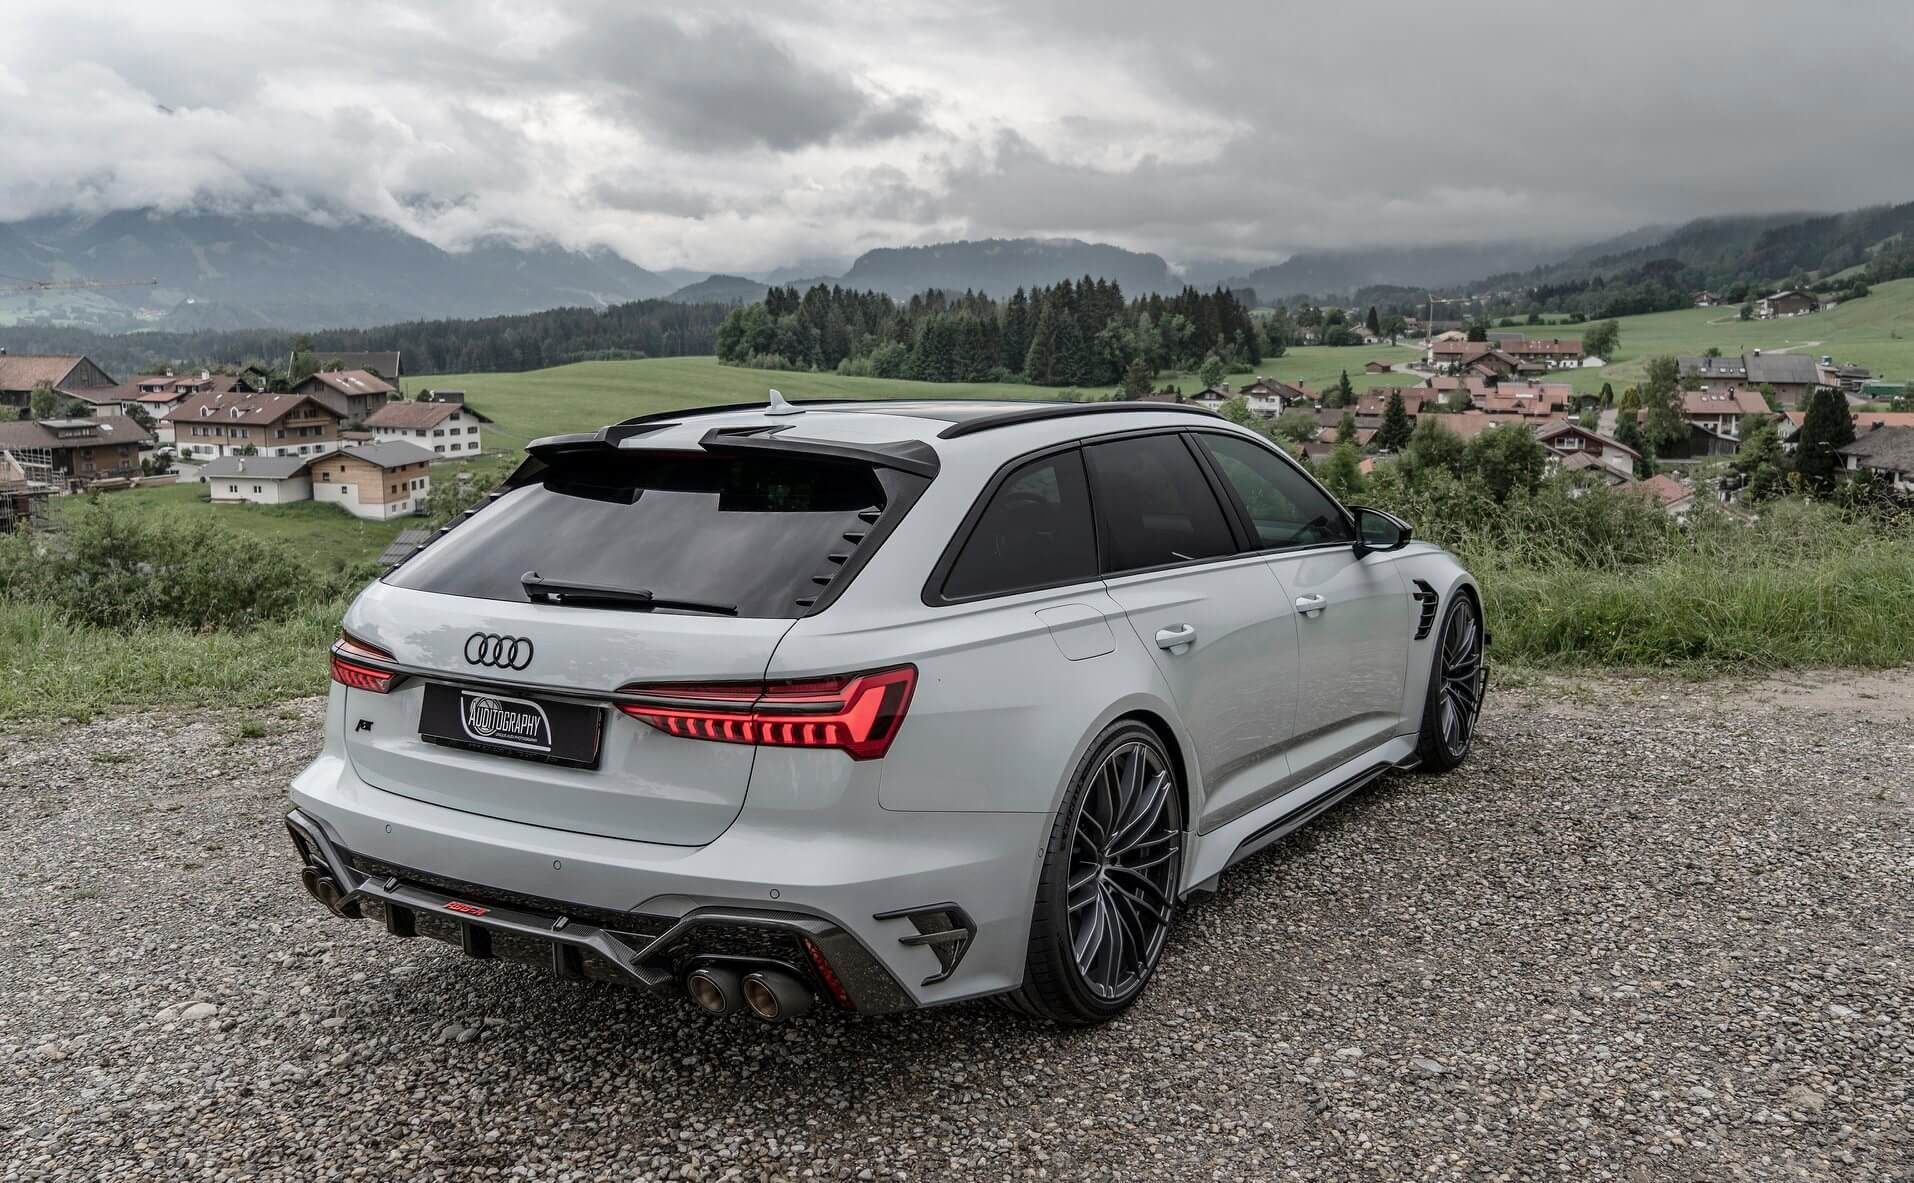 2021 Audi Rs6 R Avant By Abt In Glacier White Looks The Business Audi Rs6 Audi Rs Audi